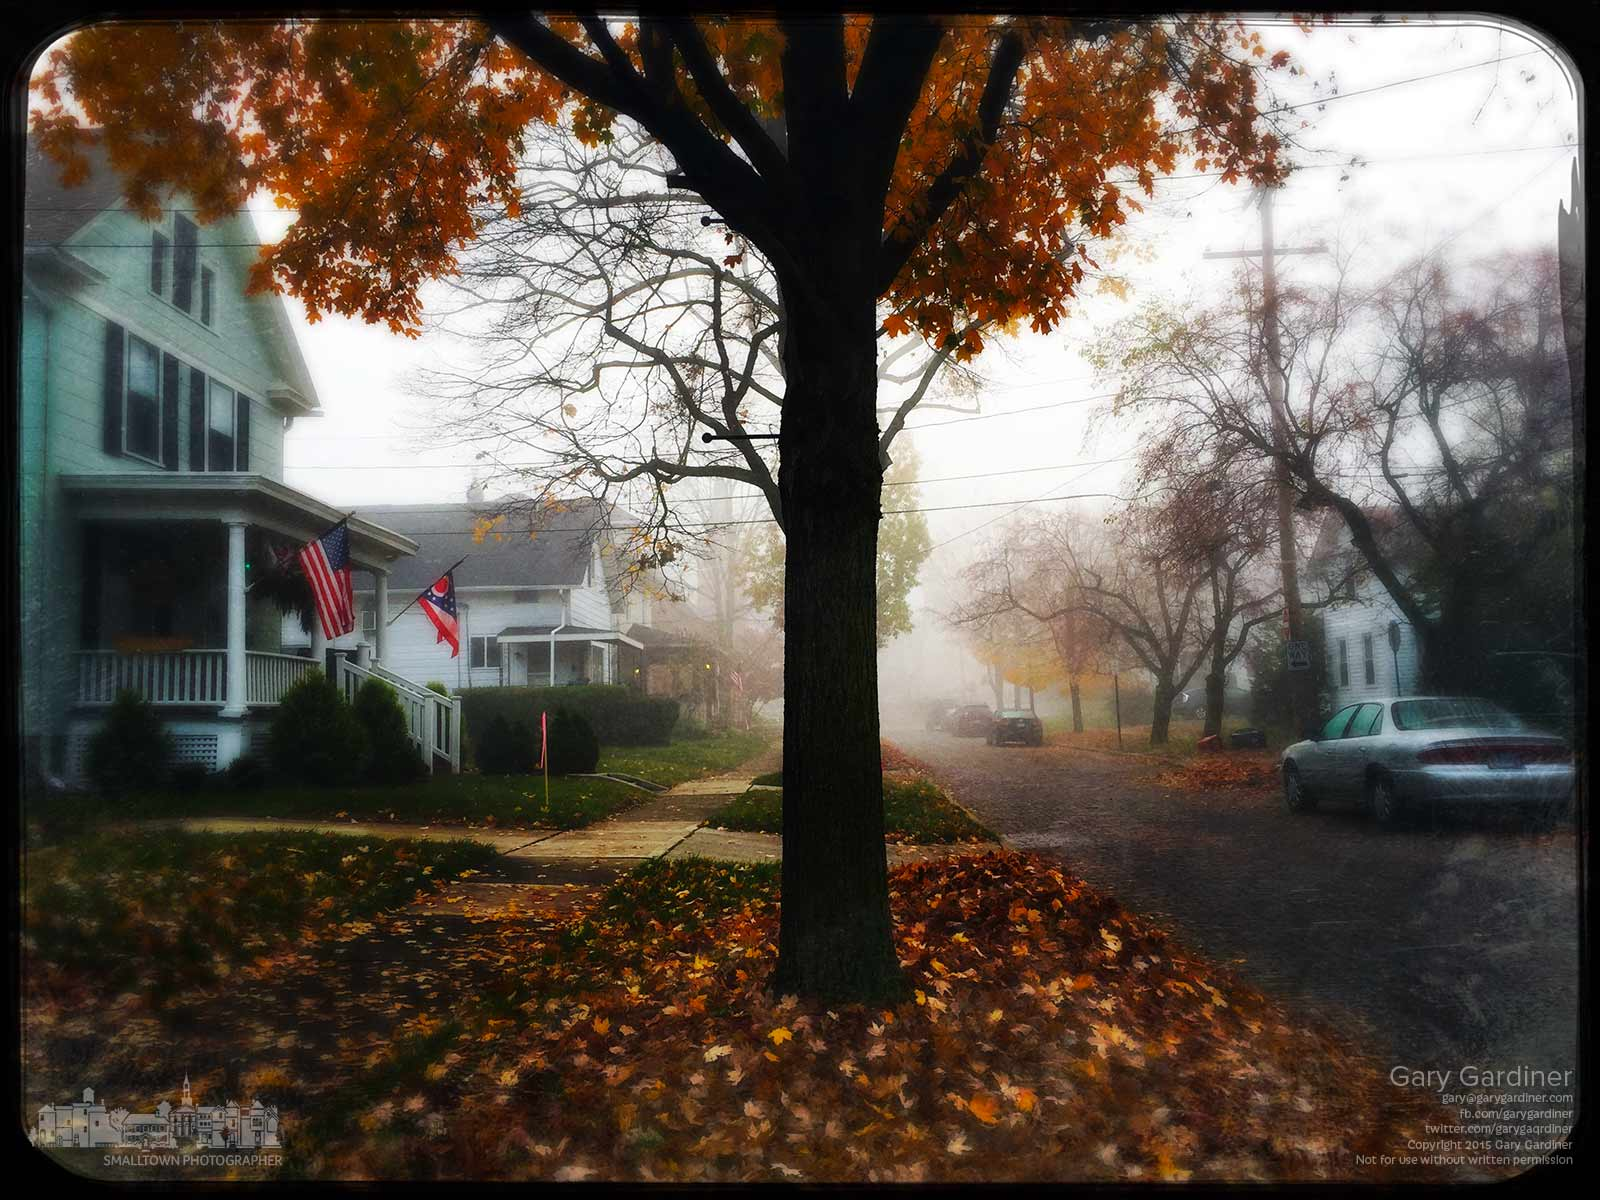 Fog obscures the distance of Winter Street in Uptown Westerville on a cool fall morning after most of the leaves have fallen from the trees. My Final Photo for Nov. 11, 2015.